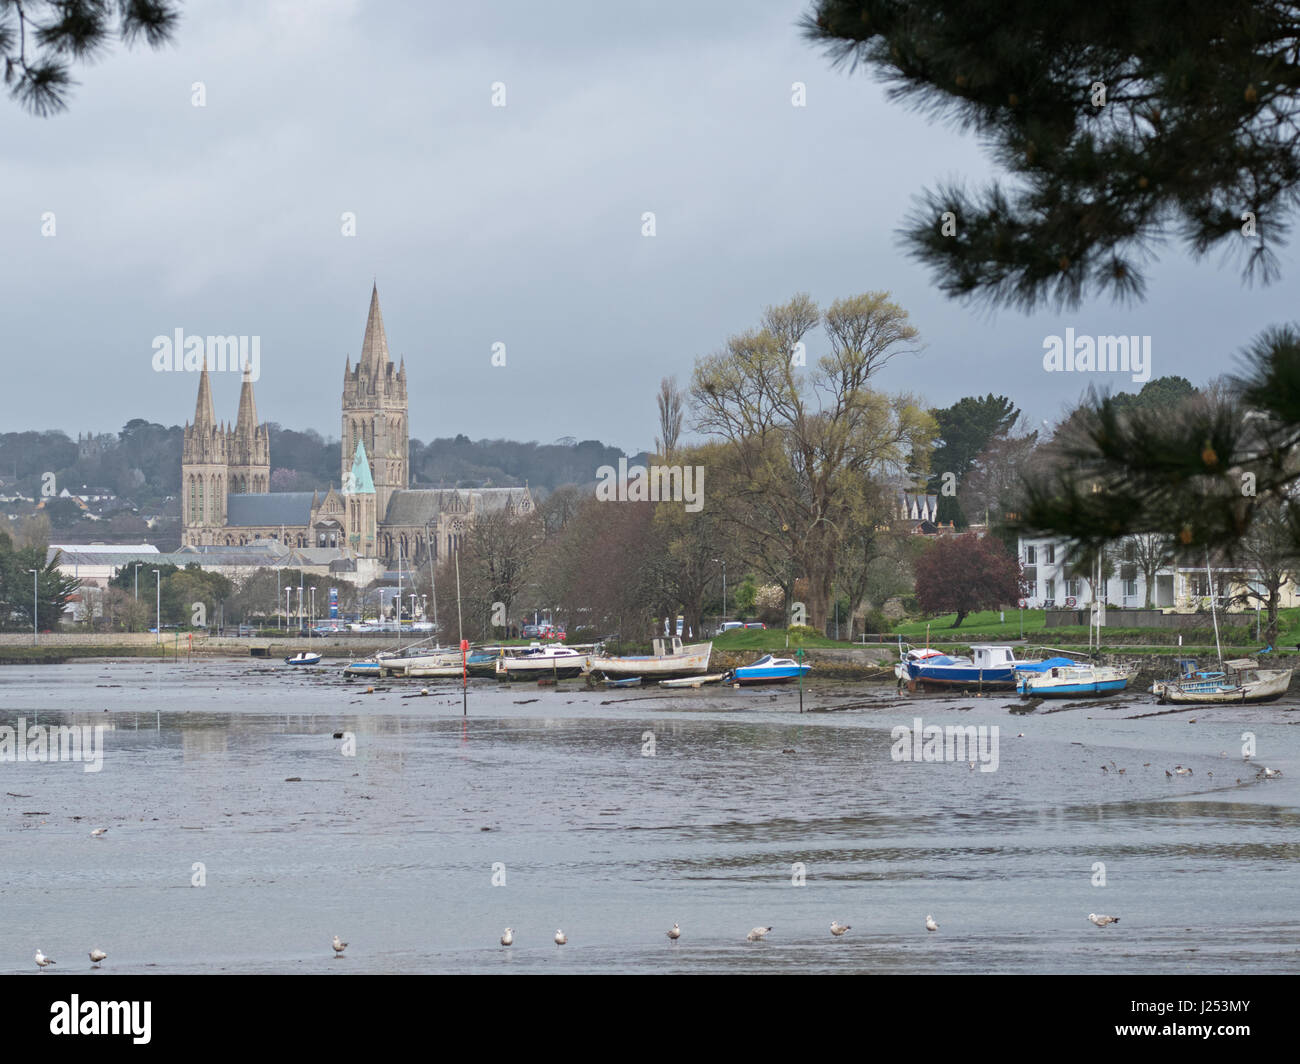 Stock photo hamburg germany riverside new - The Cathedral Of The Blessed Virgin Mary And Riverside In Truro Cornwall With The